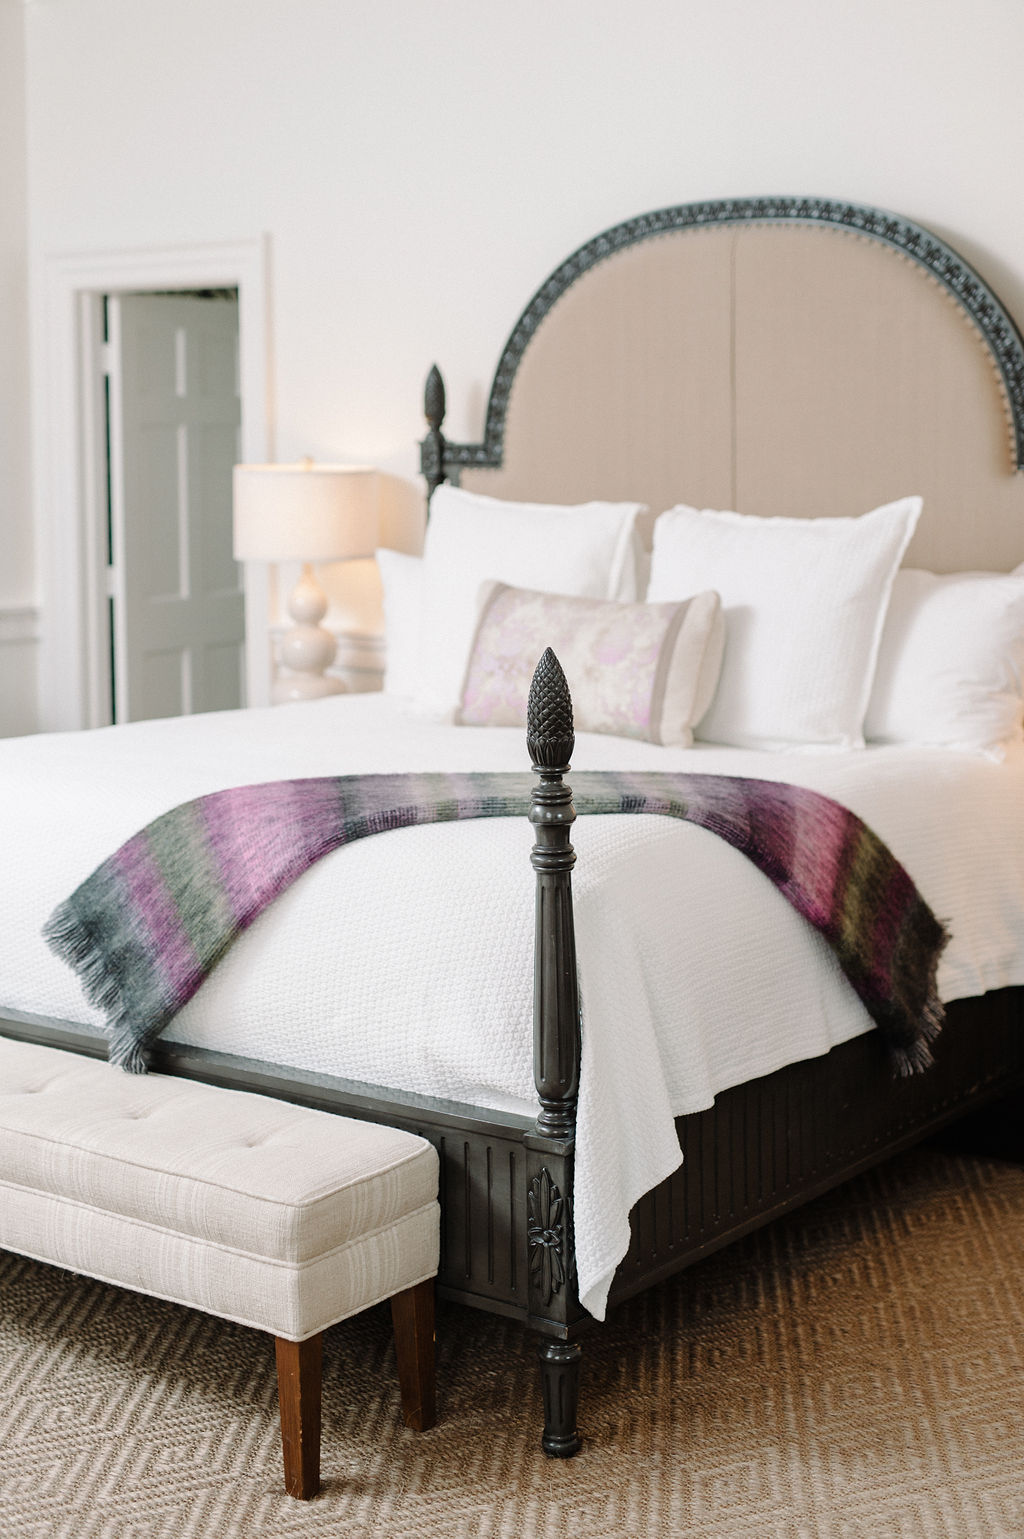 Colorful ombre throw over four post bed in Room 2